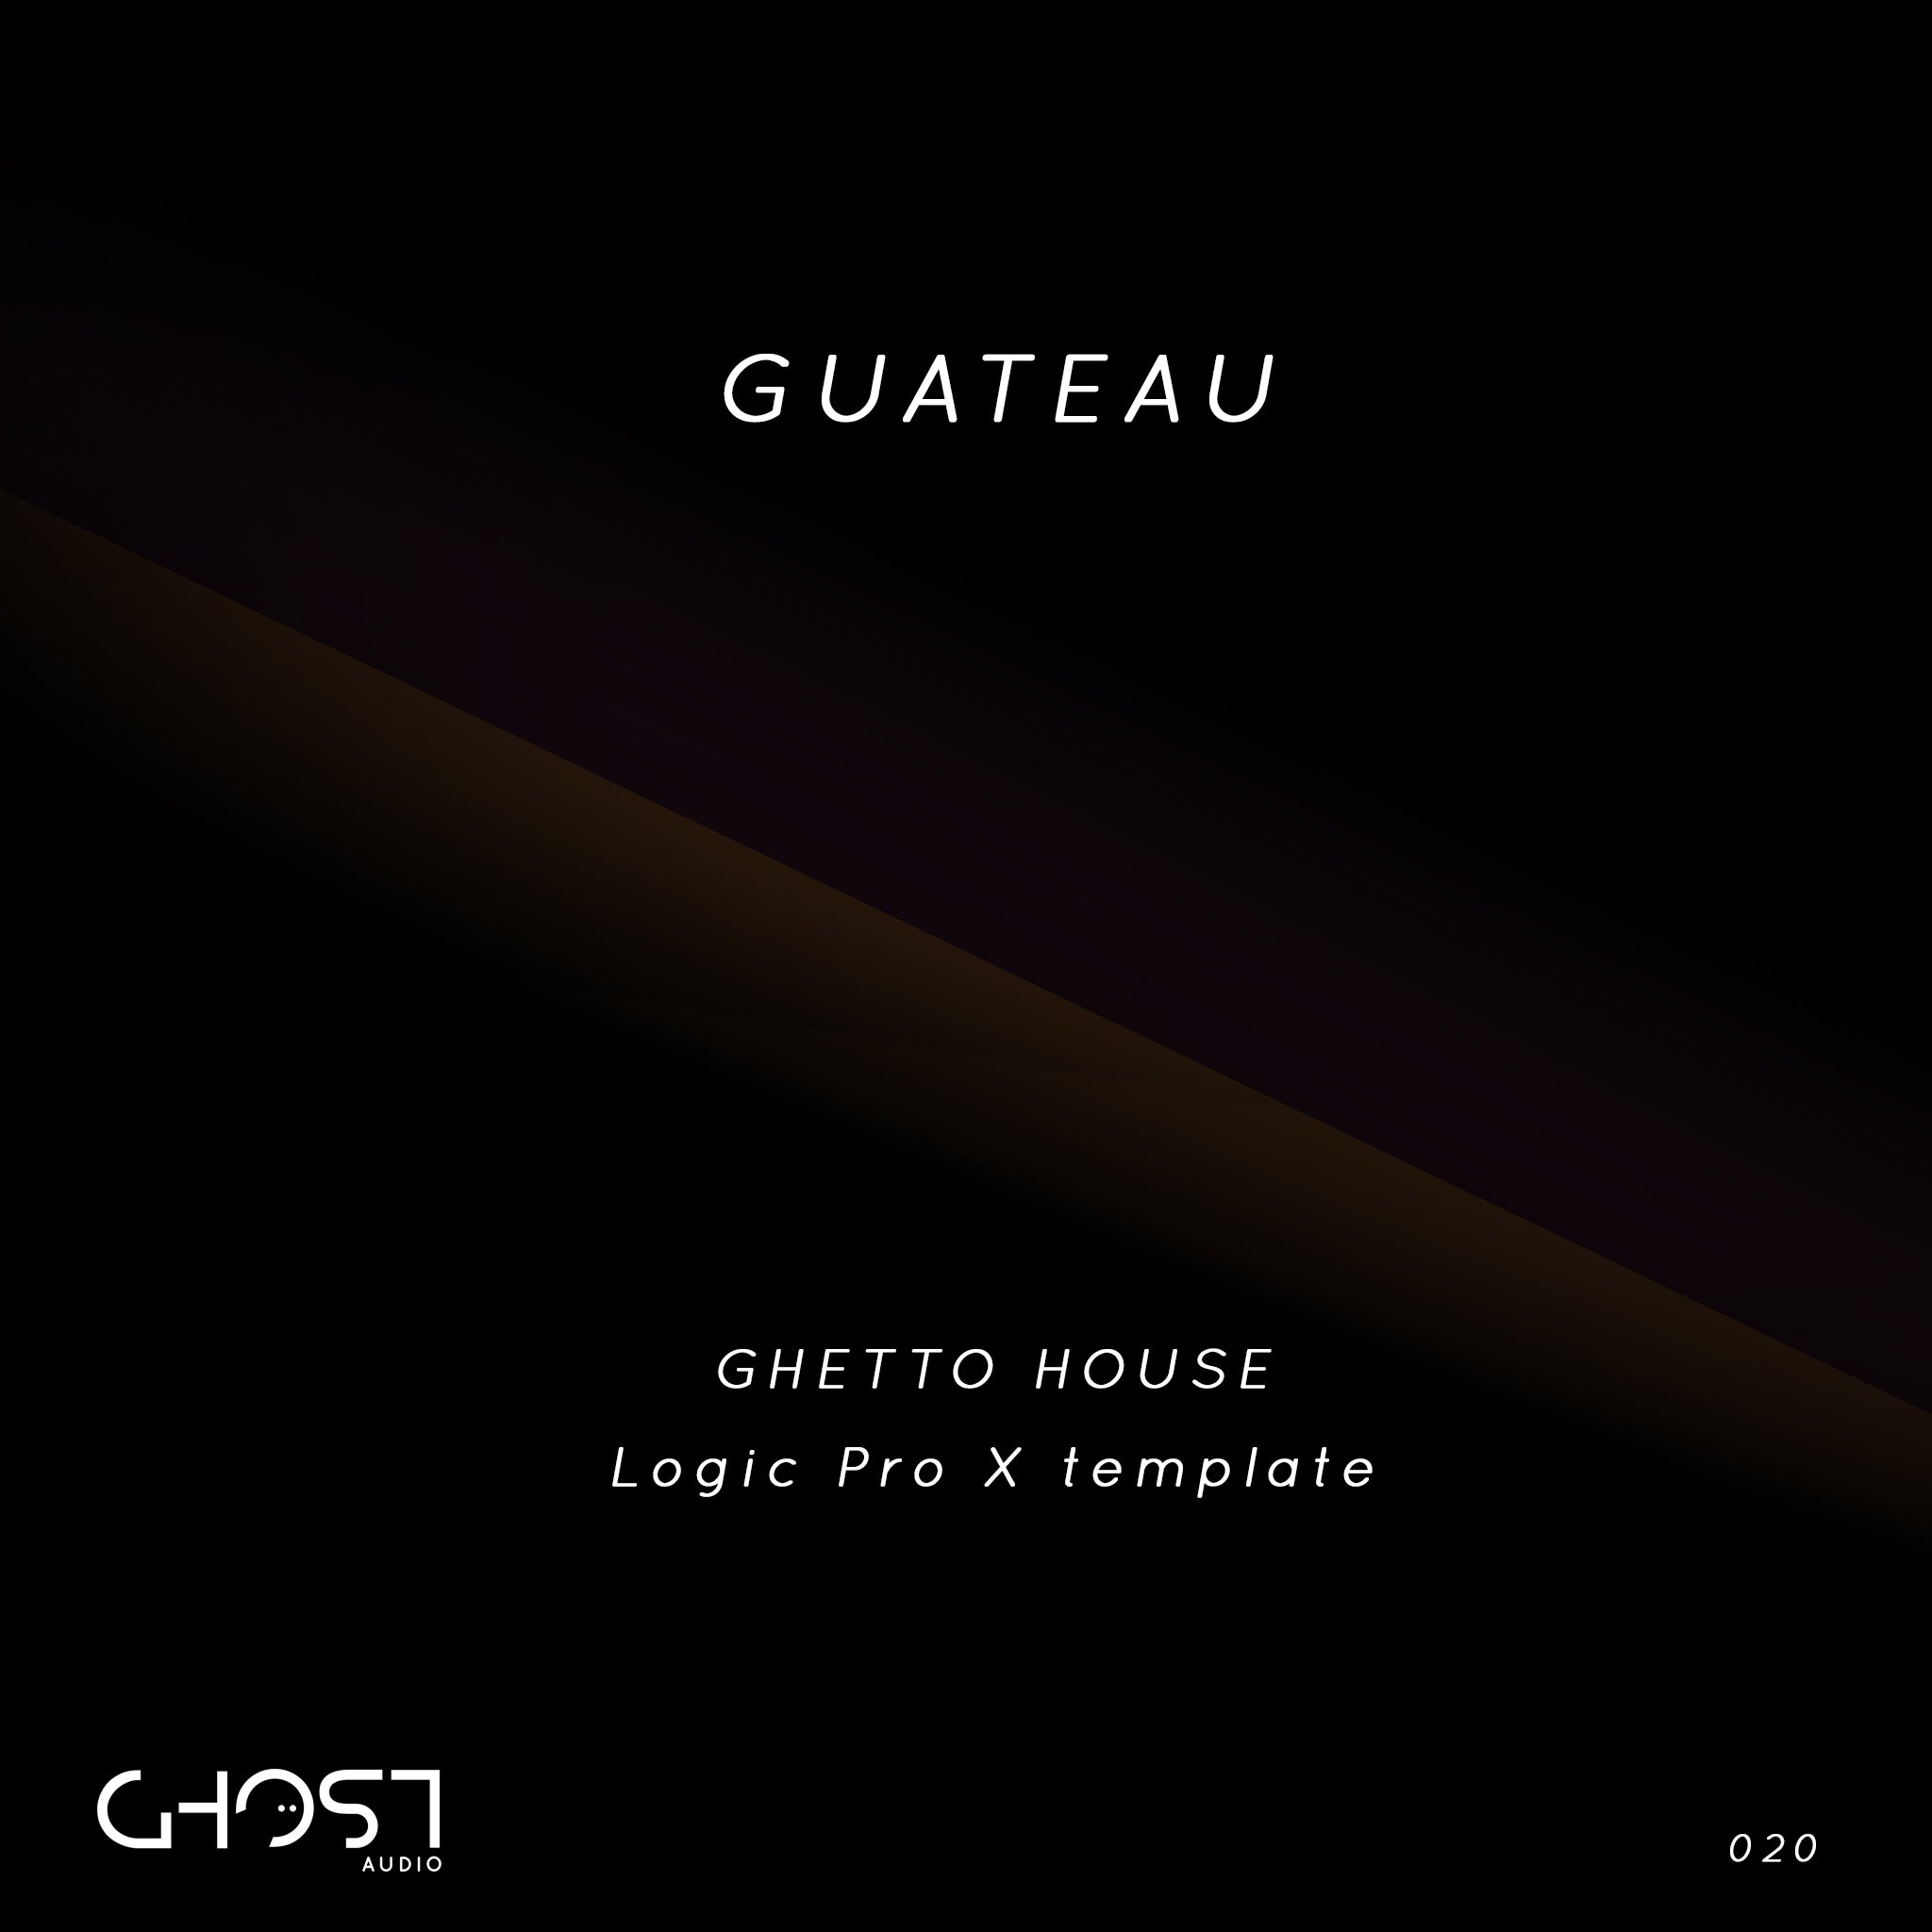 GUATEAU ( GHETTO HOUSE - LOGIC PRO X TEMPLATE )